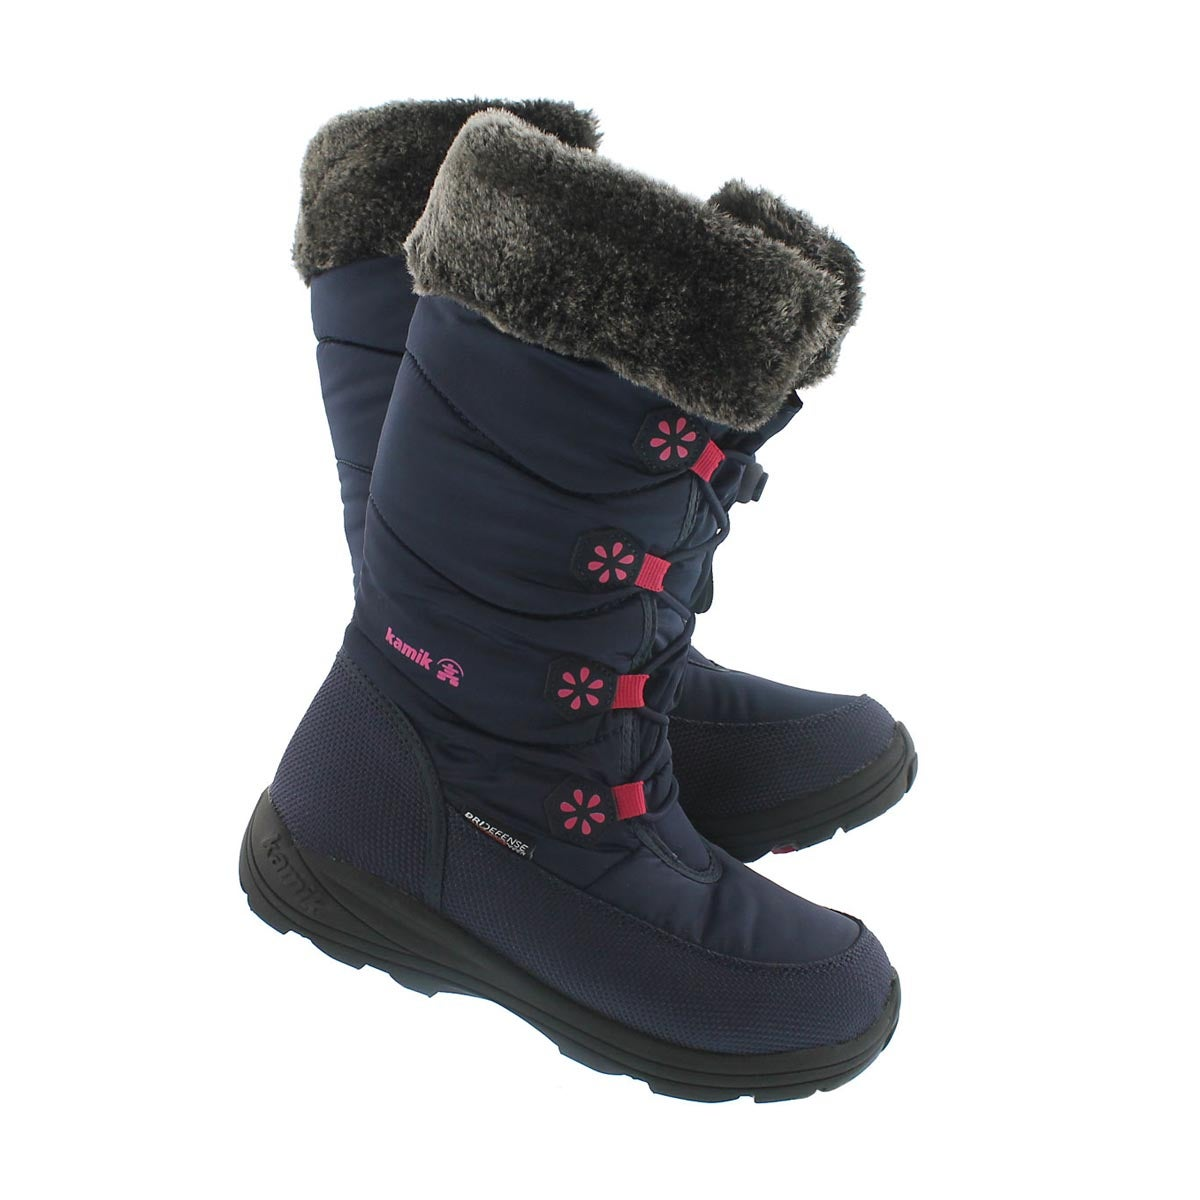 Grls Ava navy tall bungee winter boot